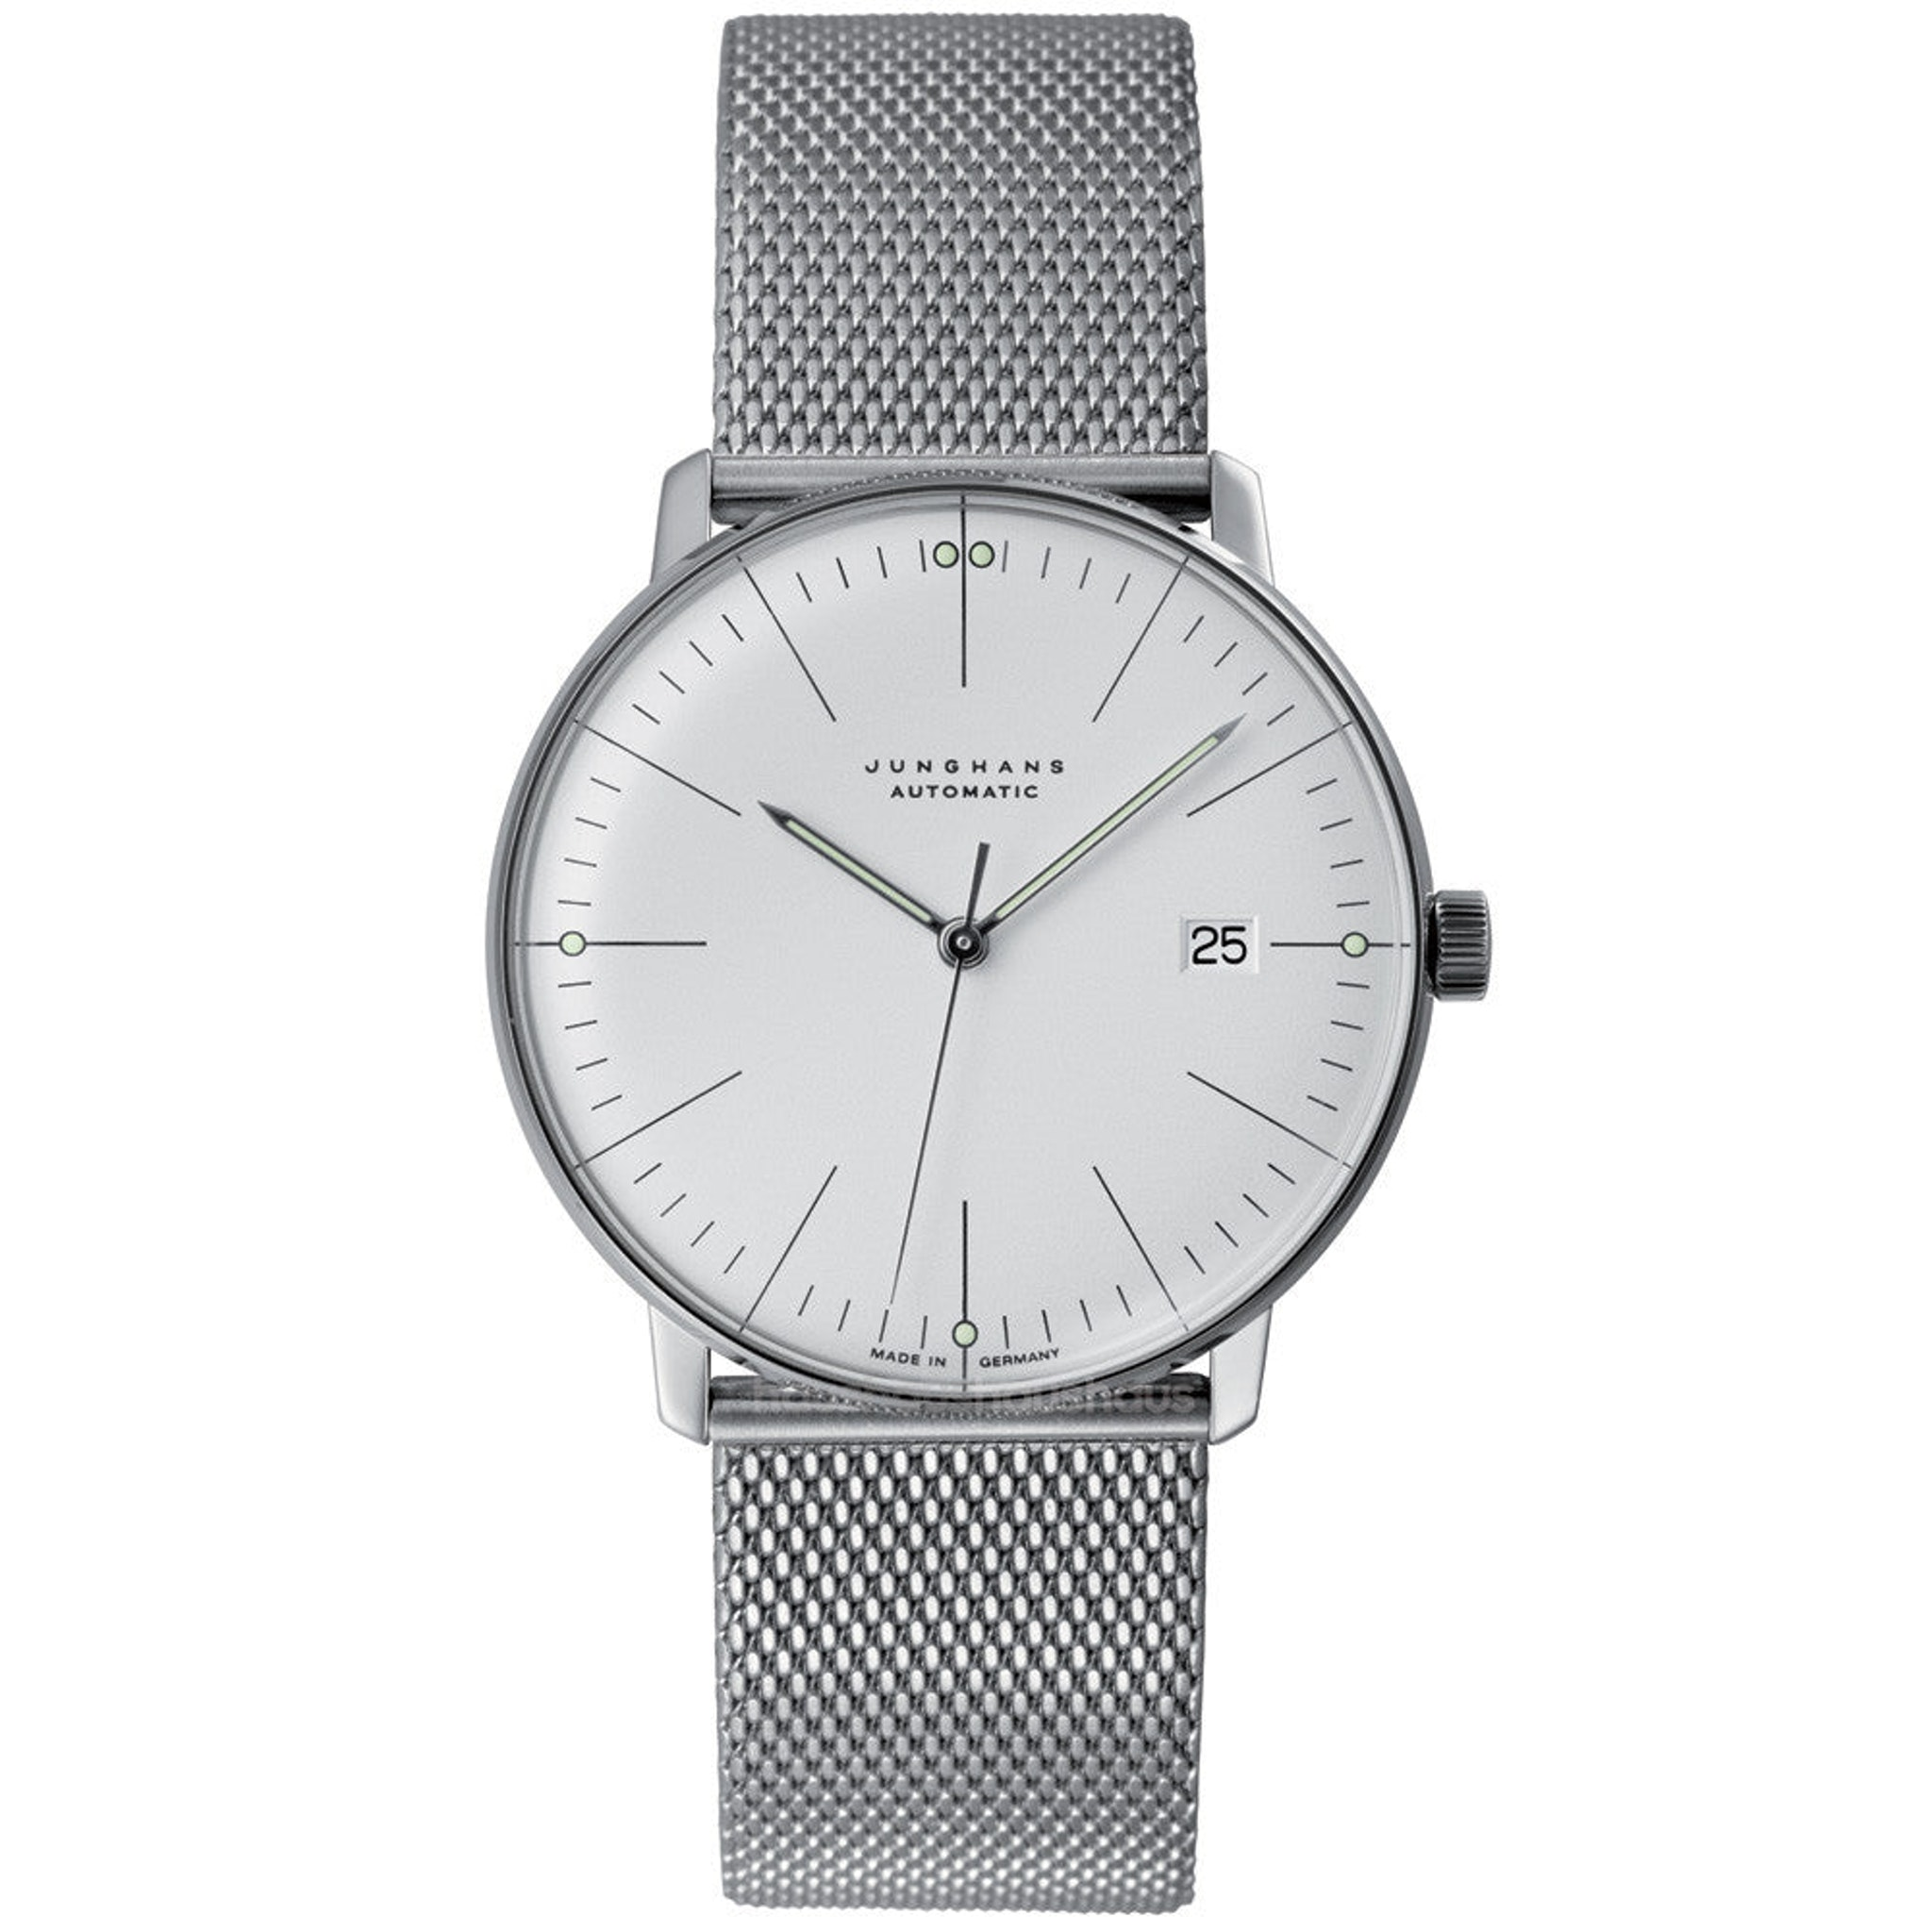 Max bill 027400244 automatic watch by junghans haus max bill 027400244 automatic watch by junghans amipublicfo Images